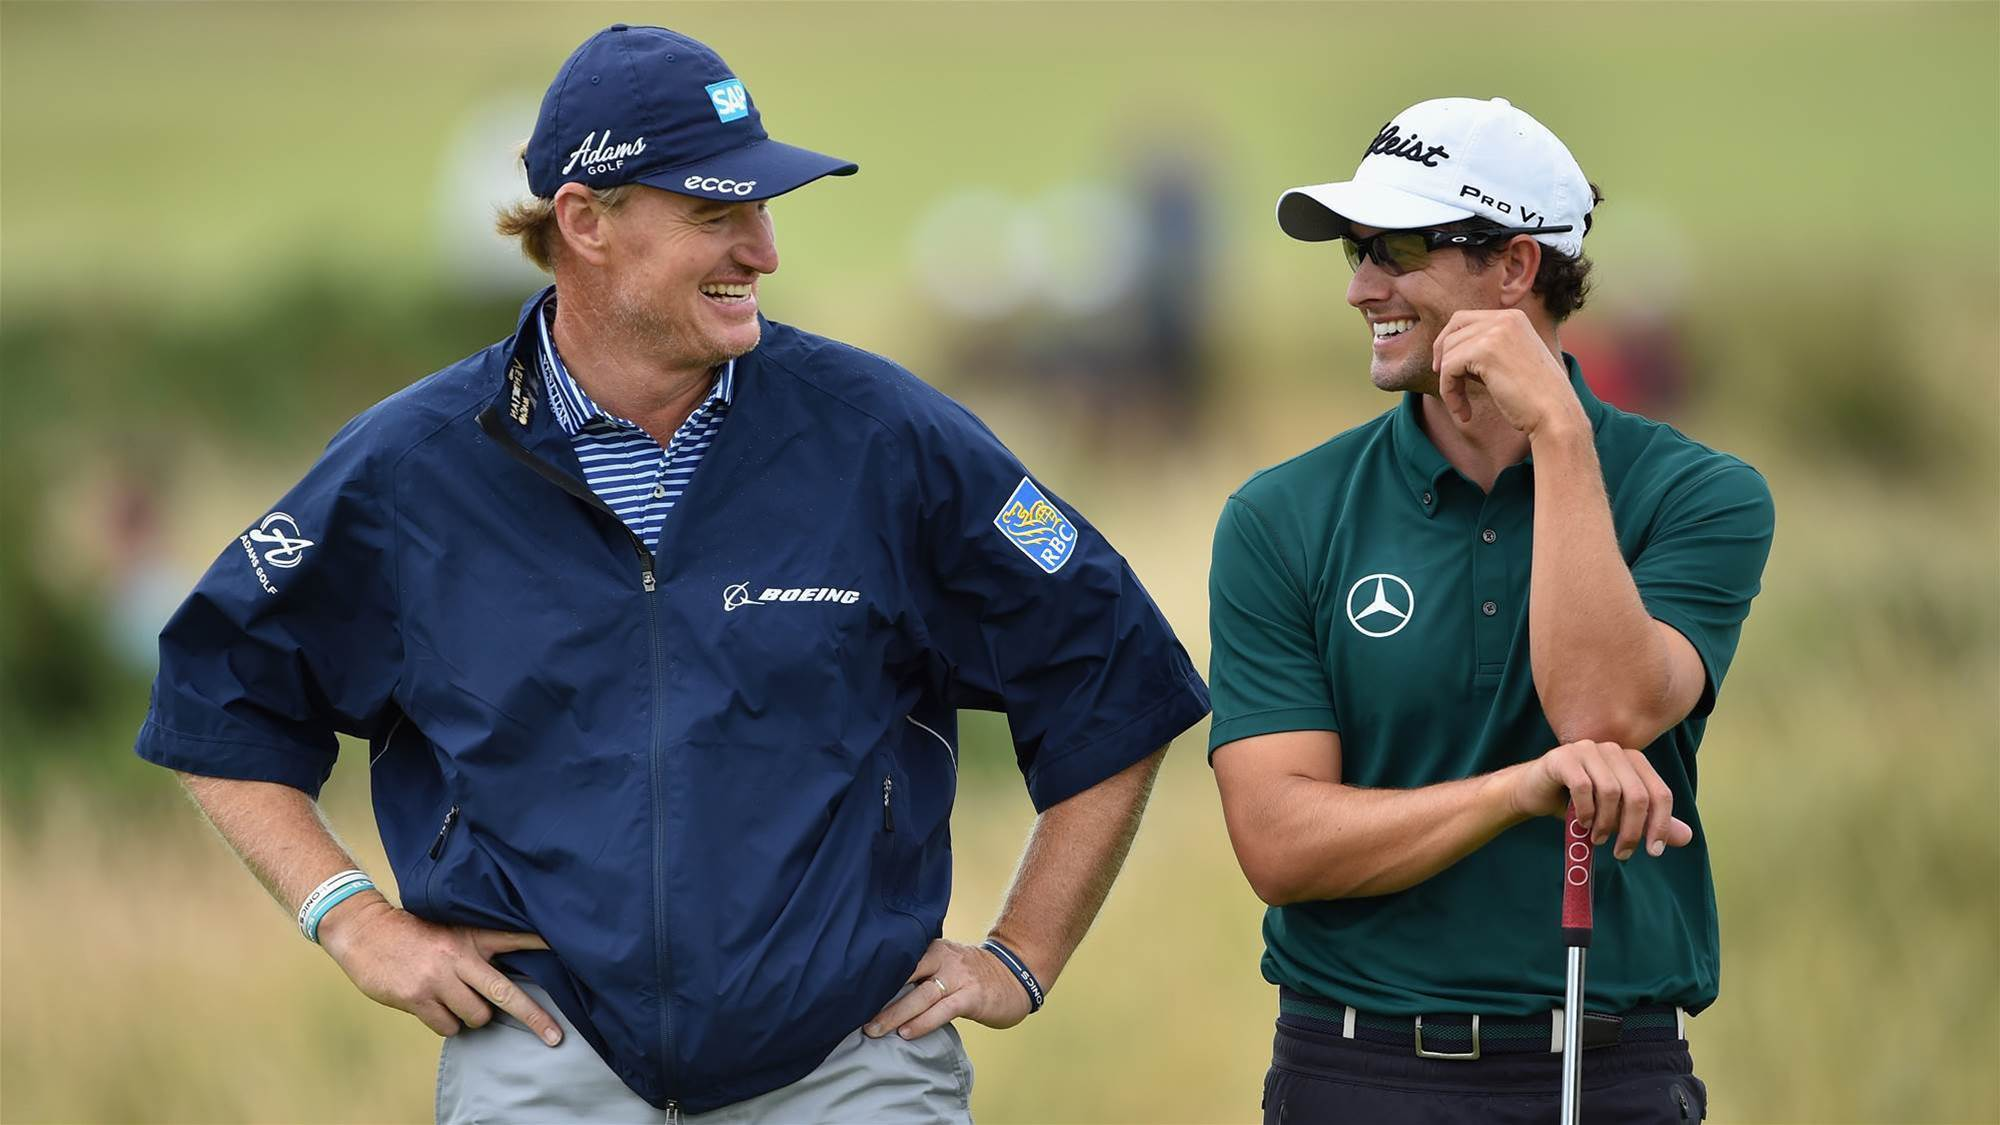 Scotty is getting back to his best: Ernie Els